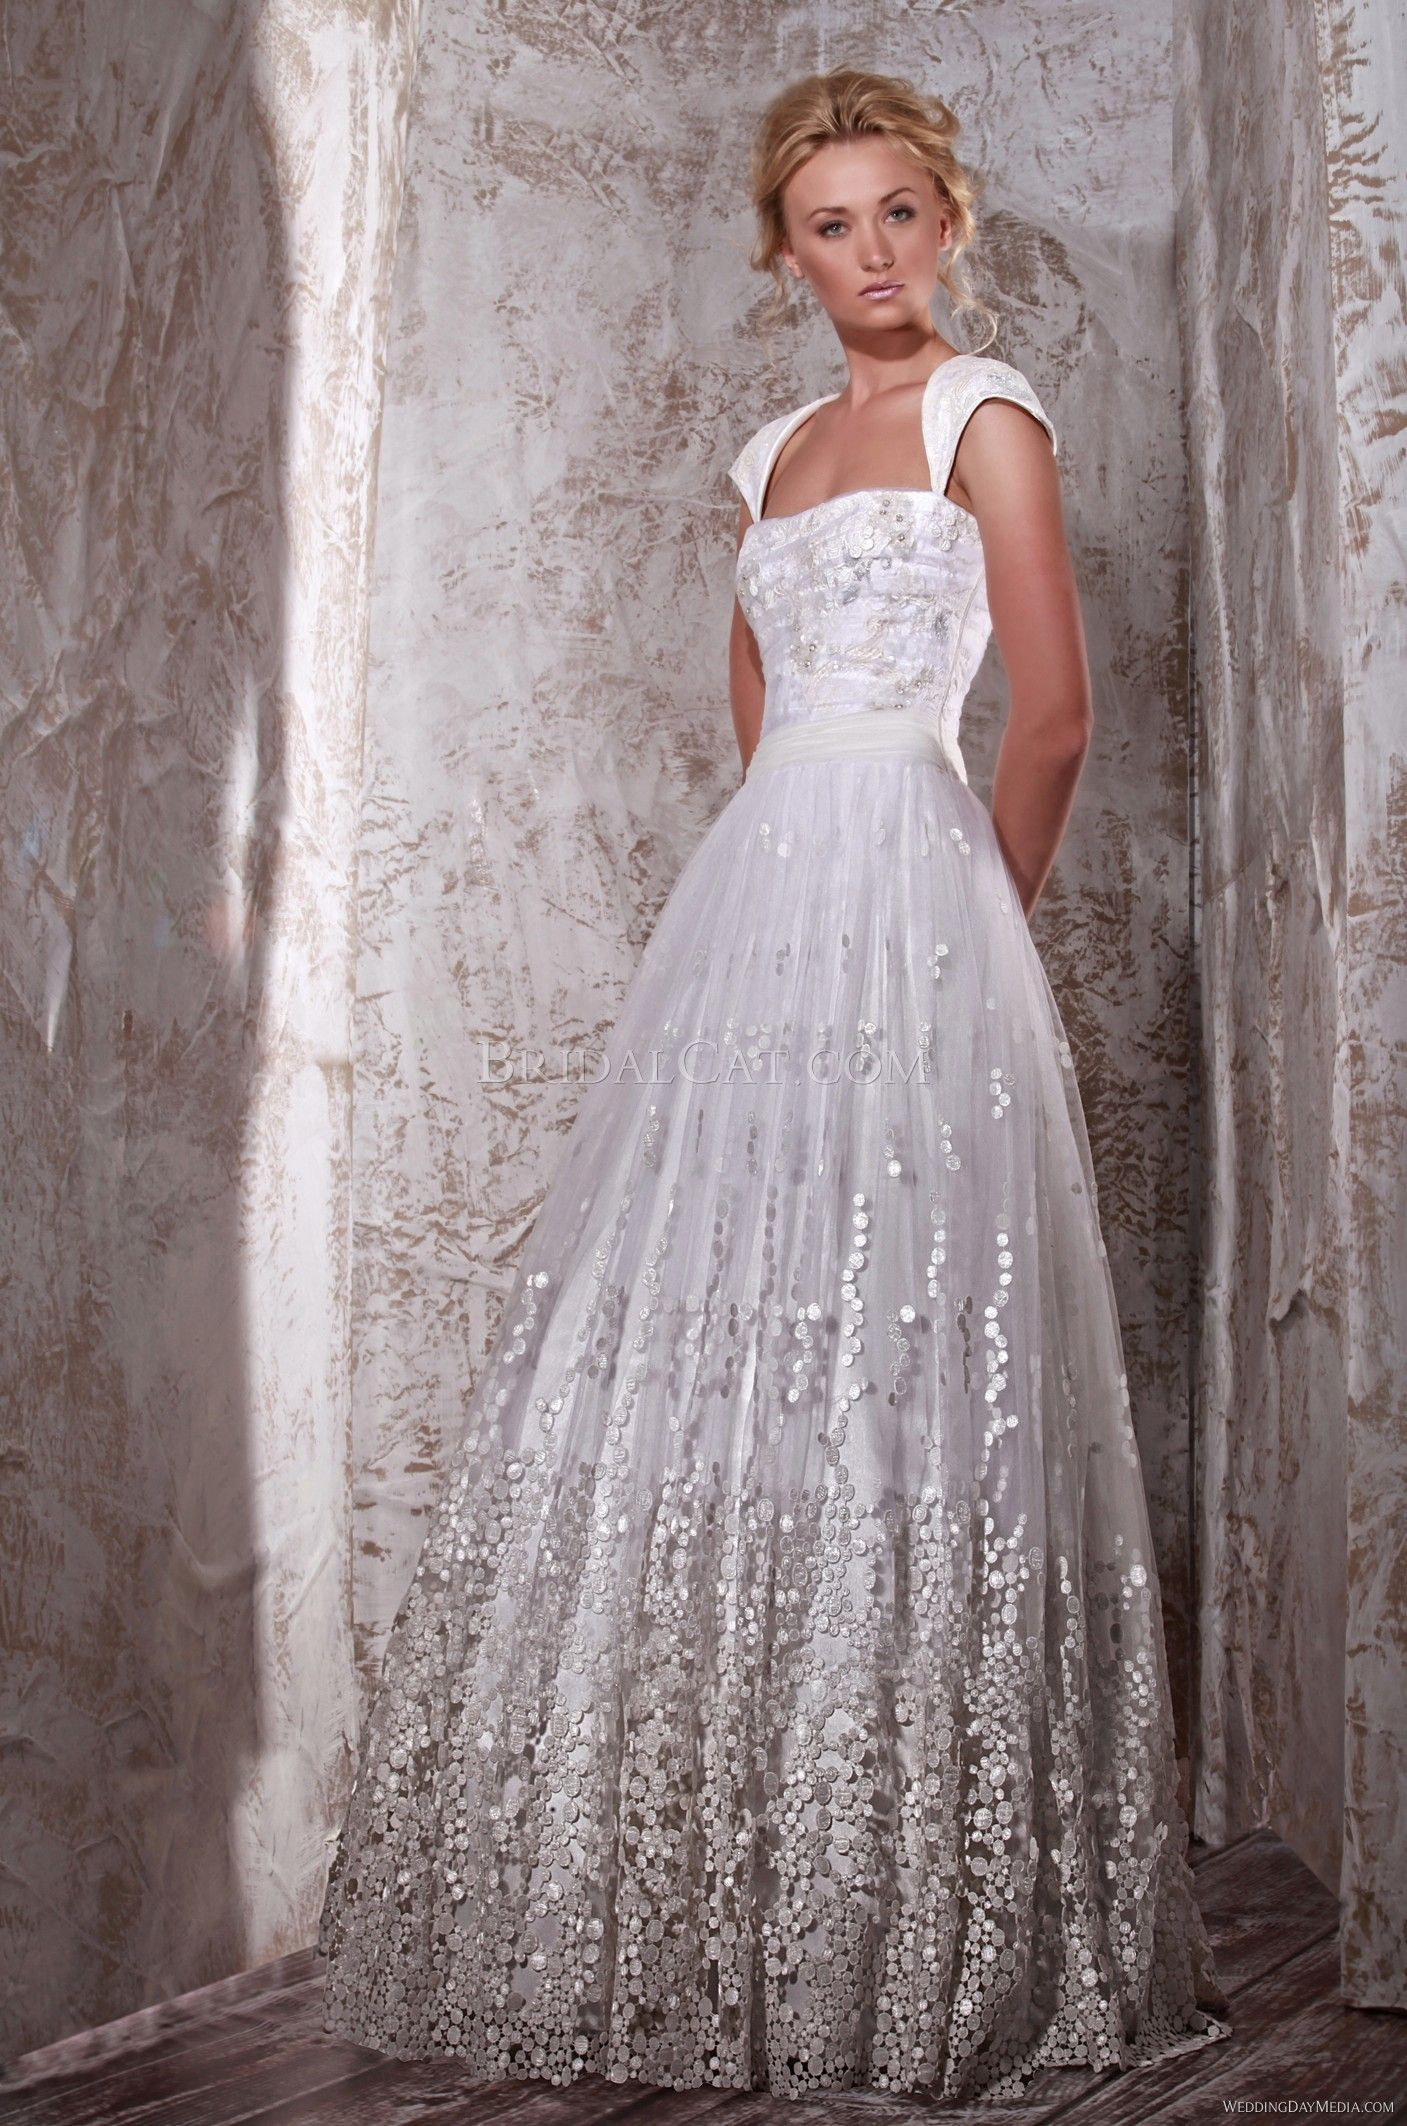 Tony ward wedding dress second time around wedding for Second time around wedding dresses